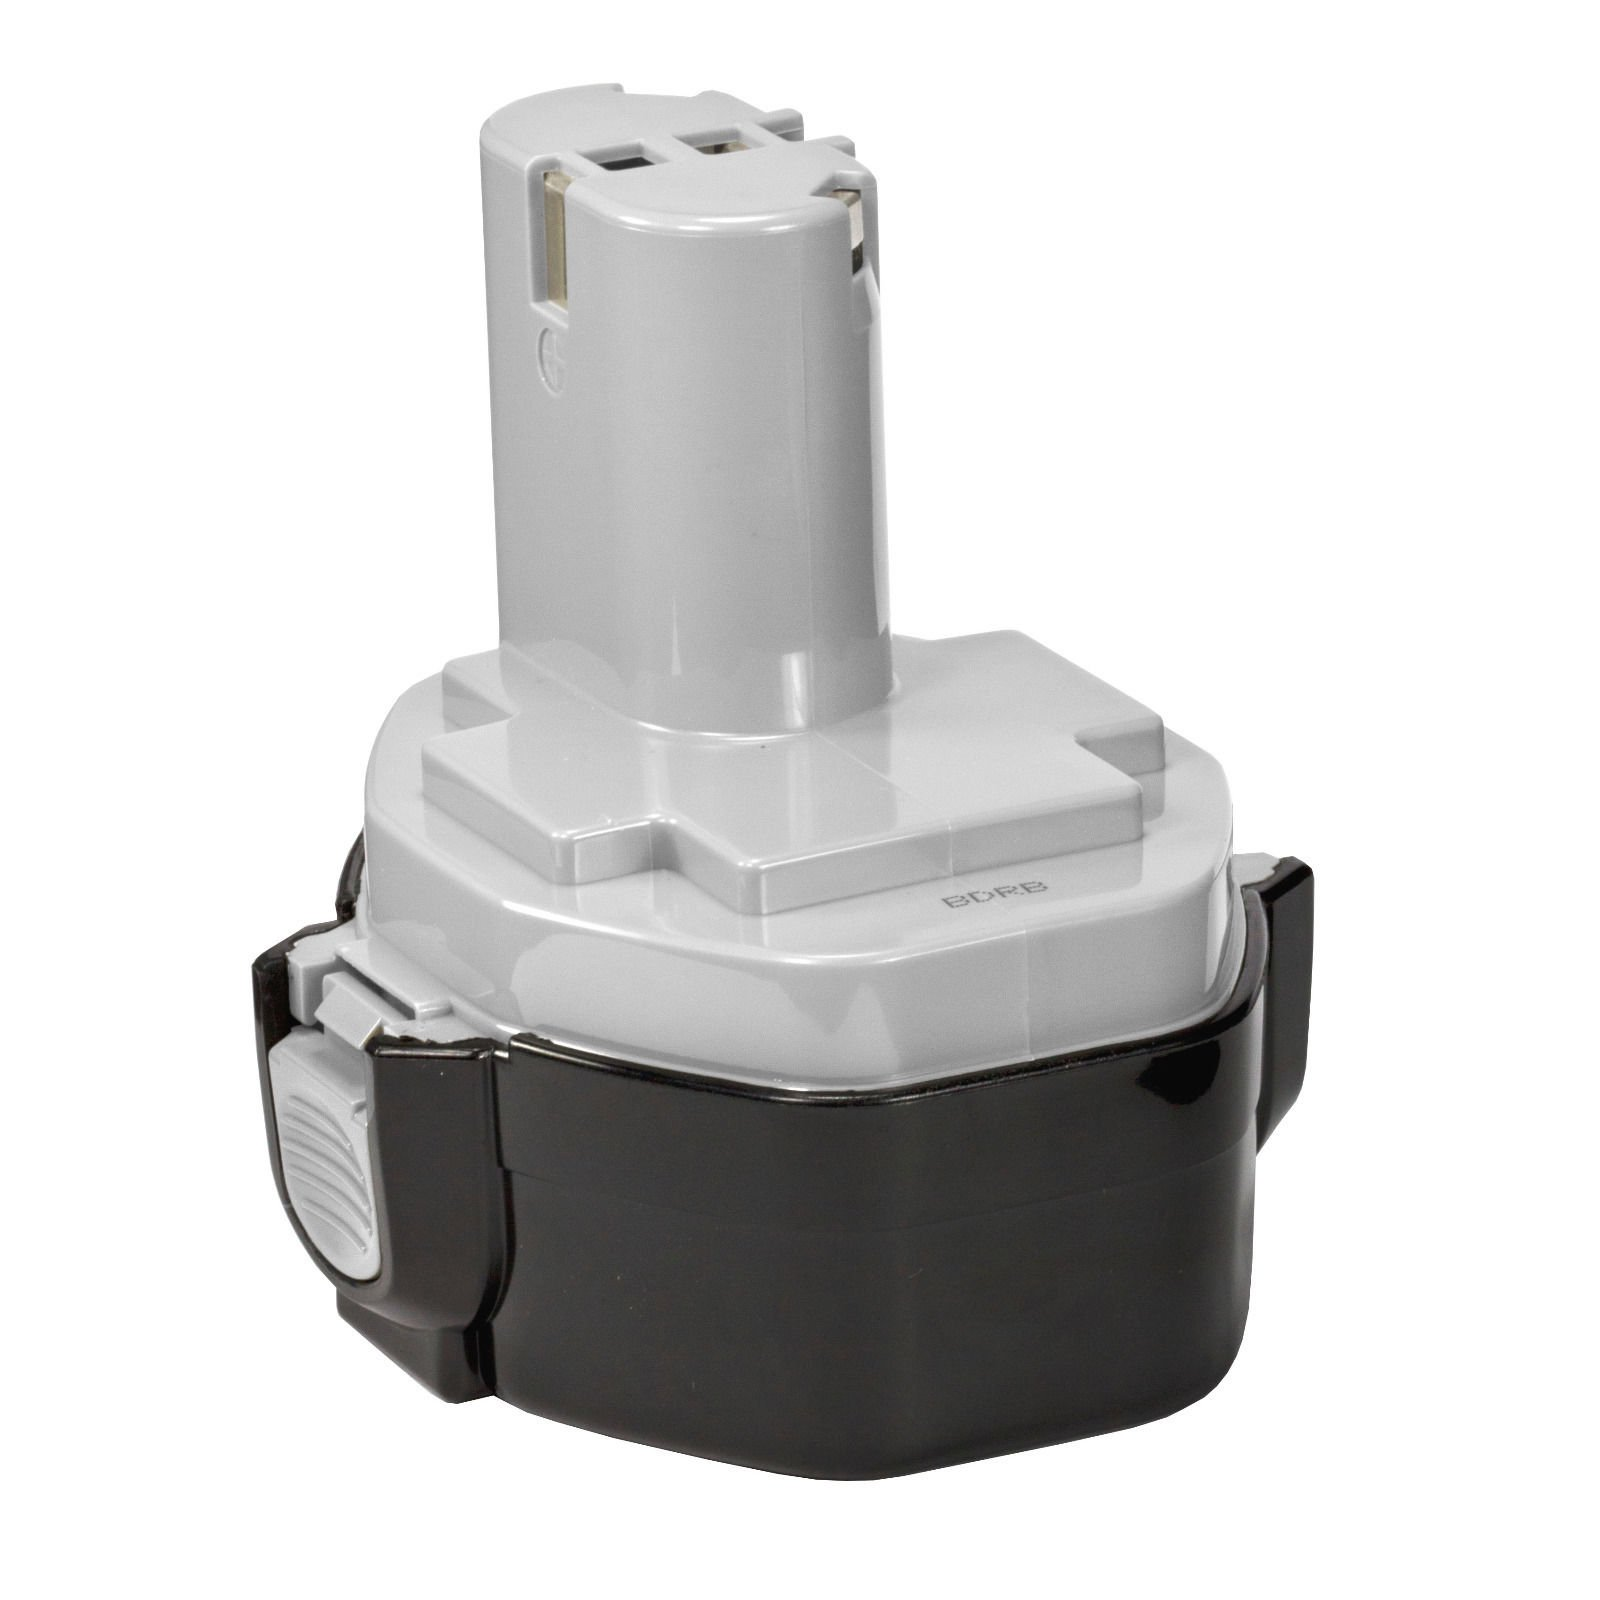 YourStoreFront New 14.4V 3.0AH Ni-Mh Battery for MAKITA 1433 1434 1435 1435F 193158-3 194172-2